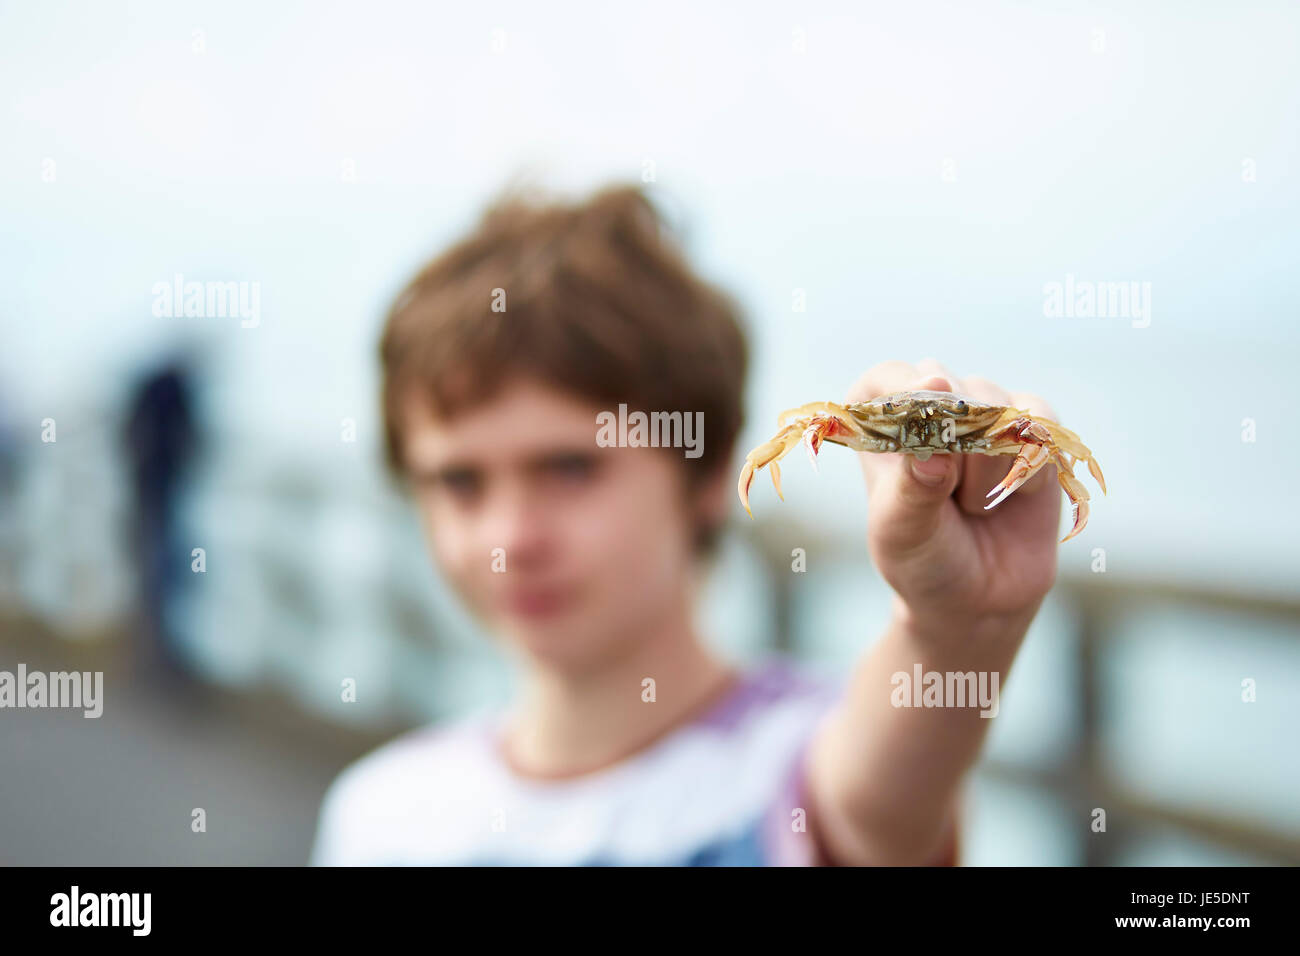 Boy (11) holding out a crab - Stock Image